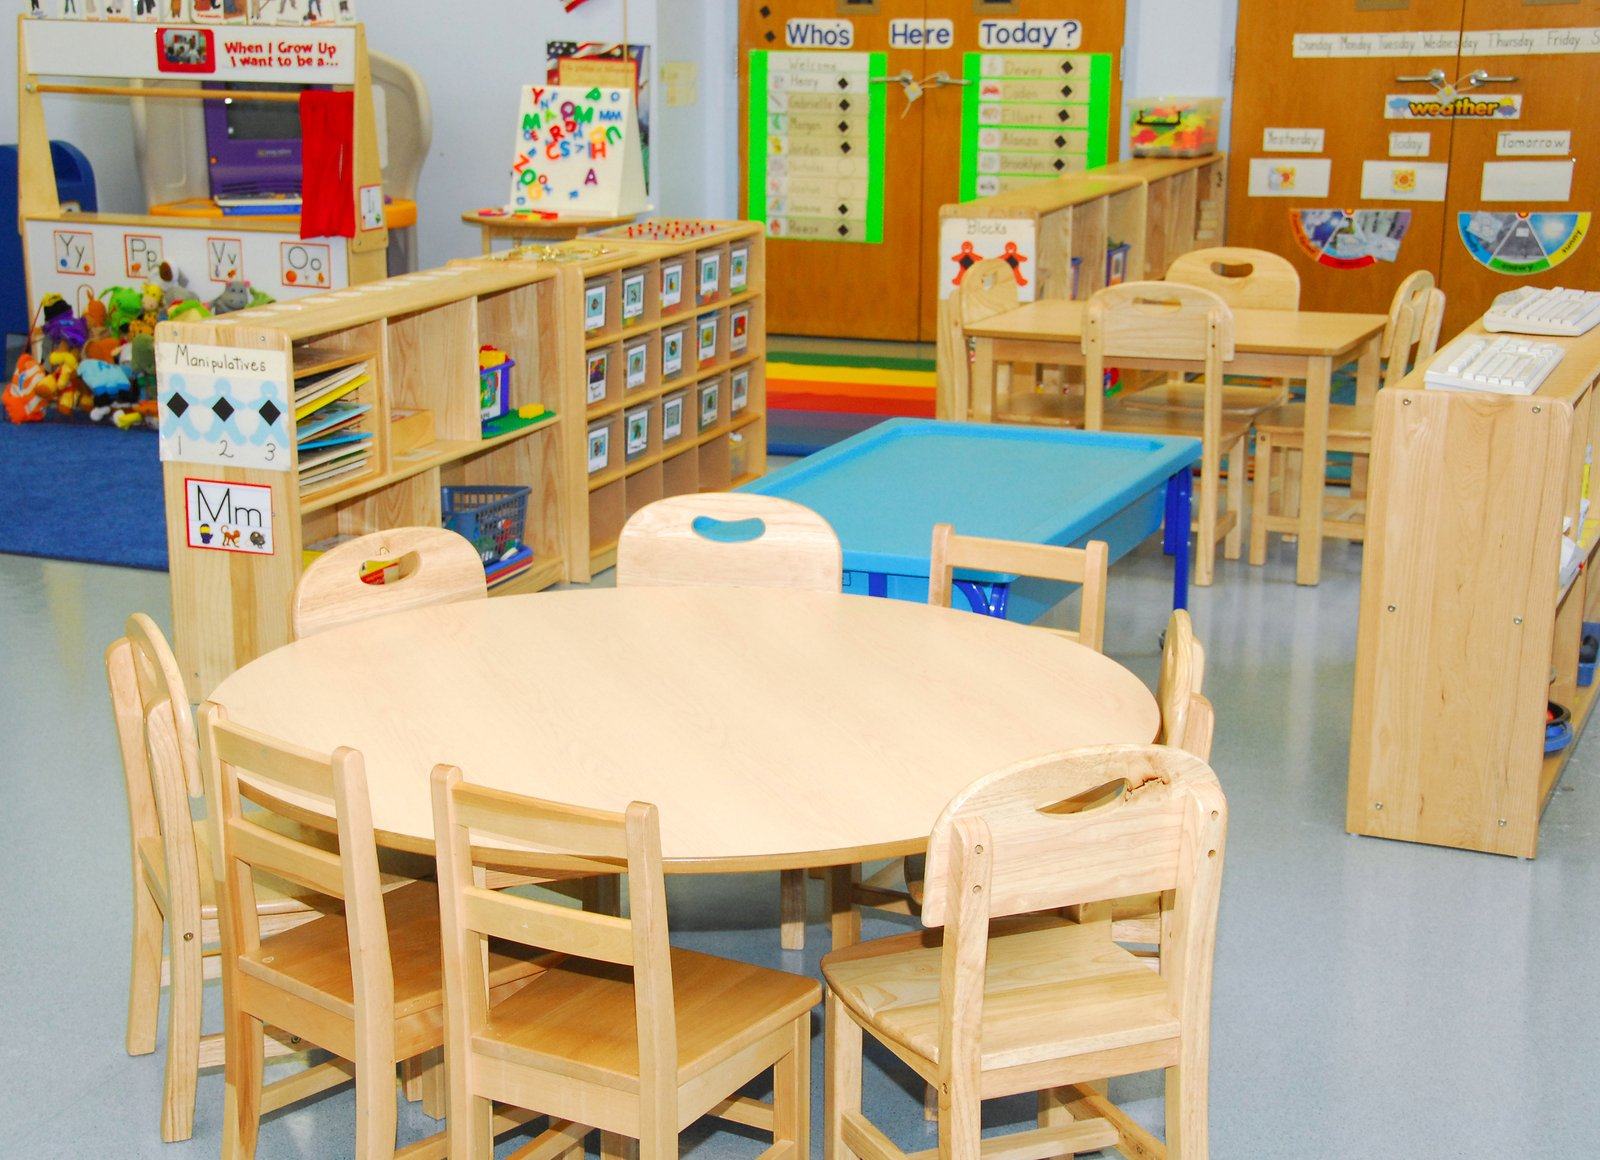 WEIRD Preschool Tries To Erase Gender Norms By Forcing Children To Massage Feet Walk In Snow